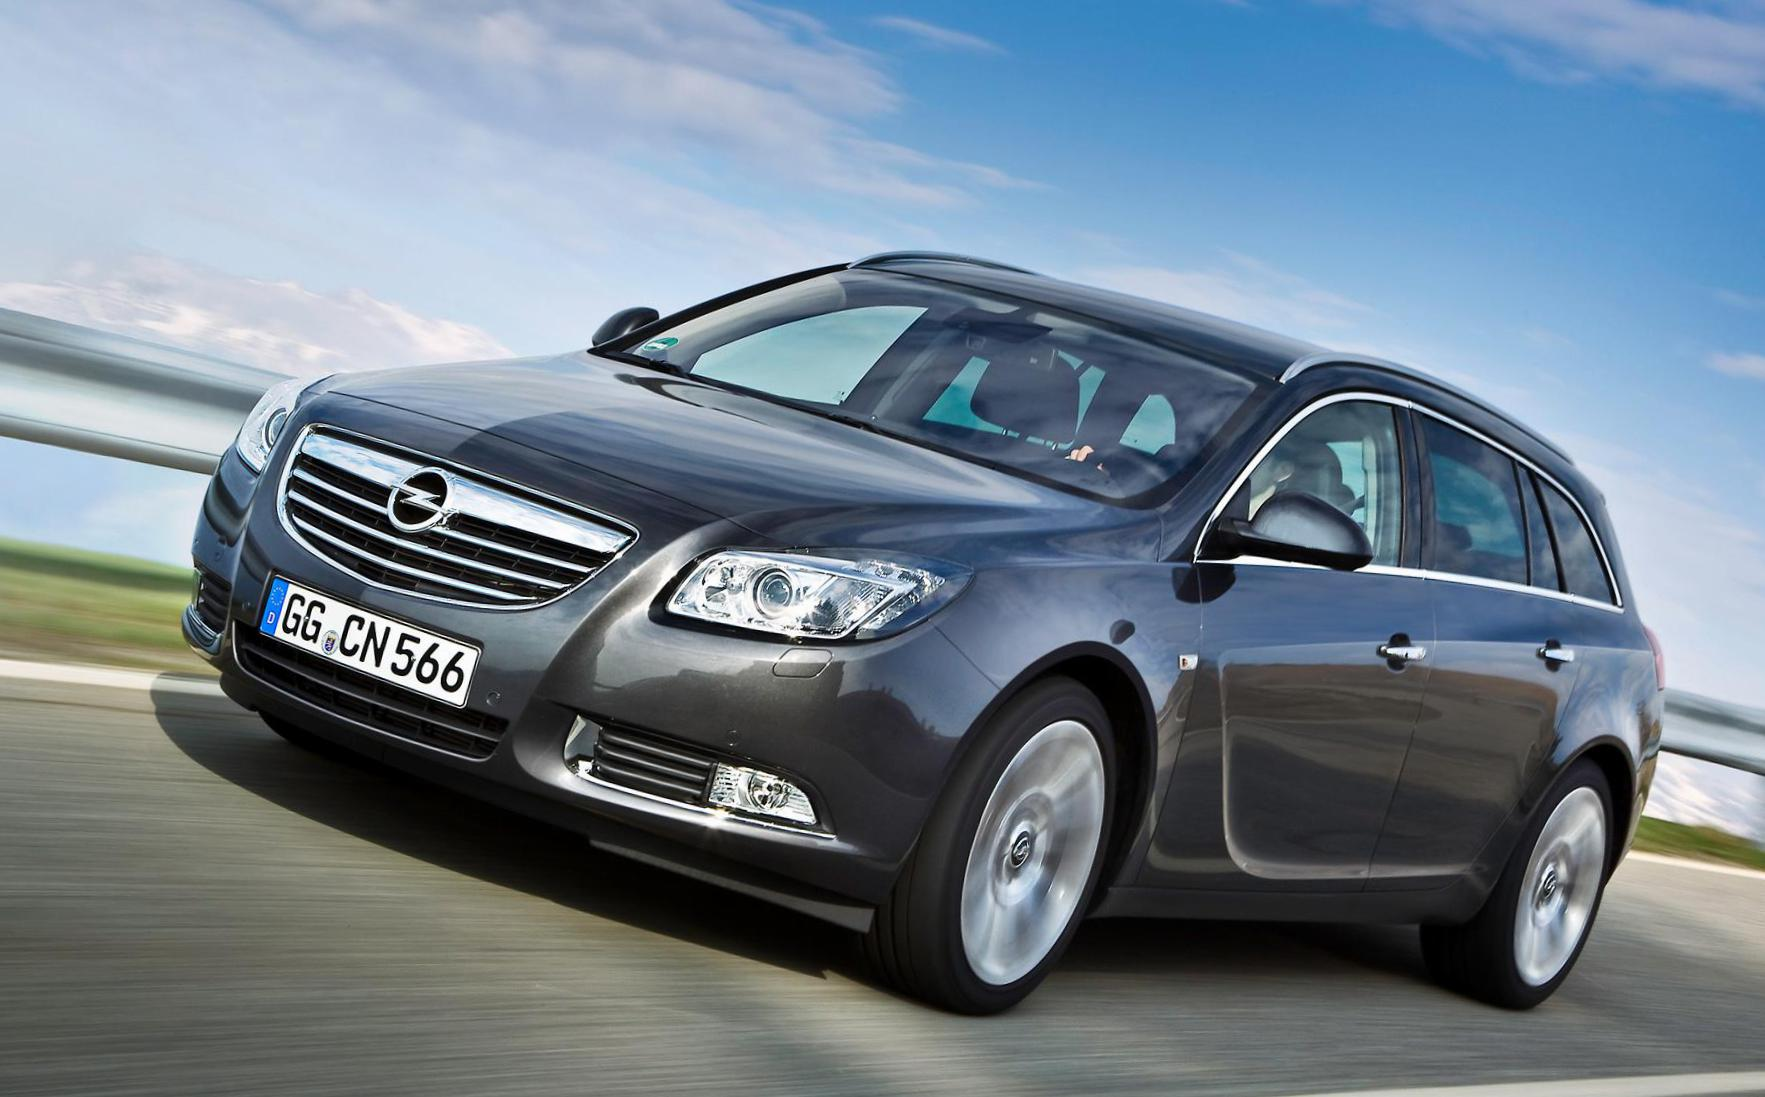 Insignia Sports Tourer Opel specs 2008